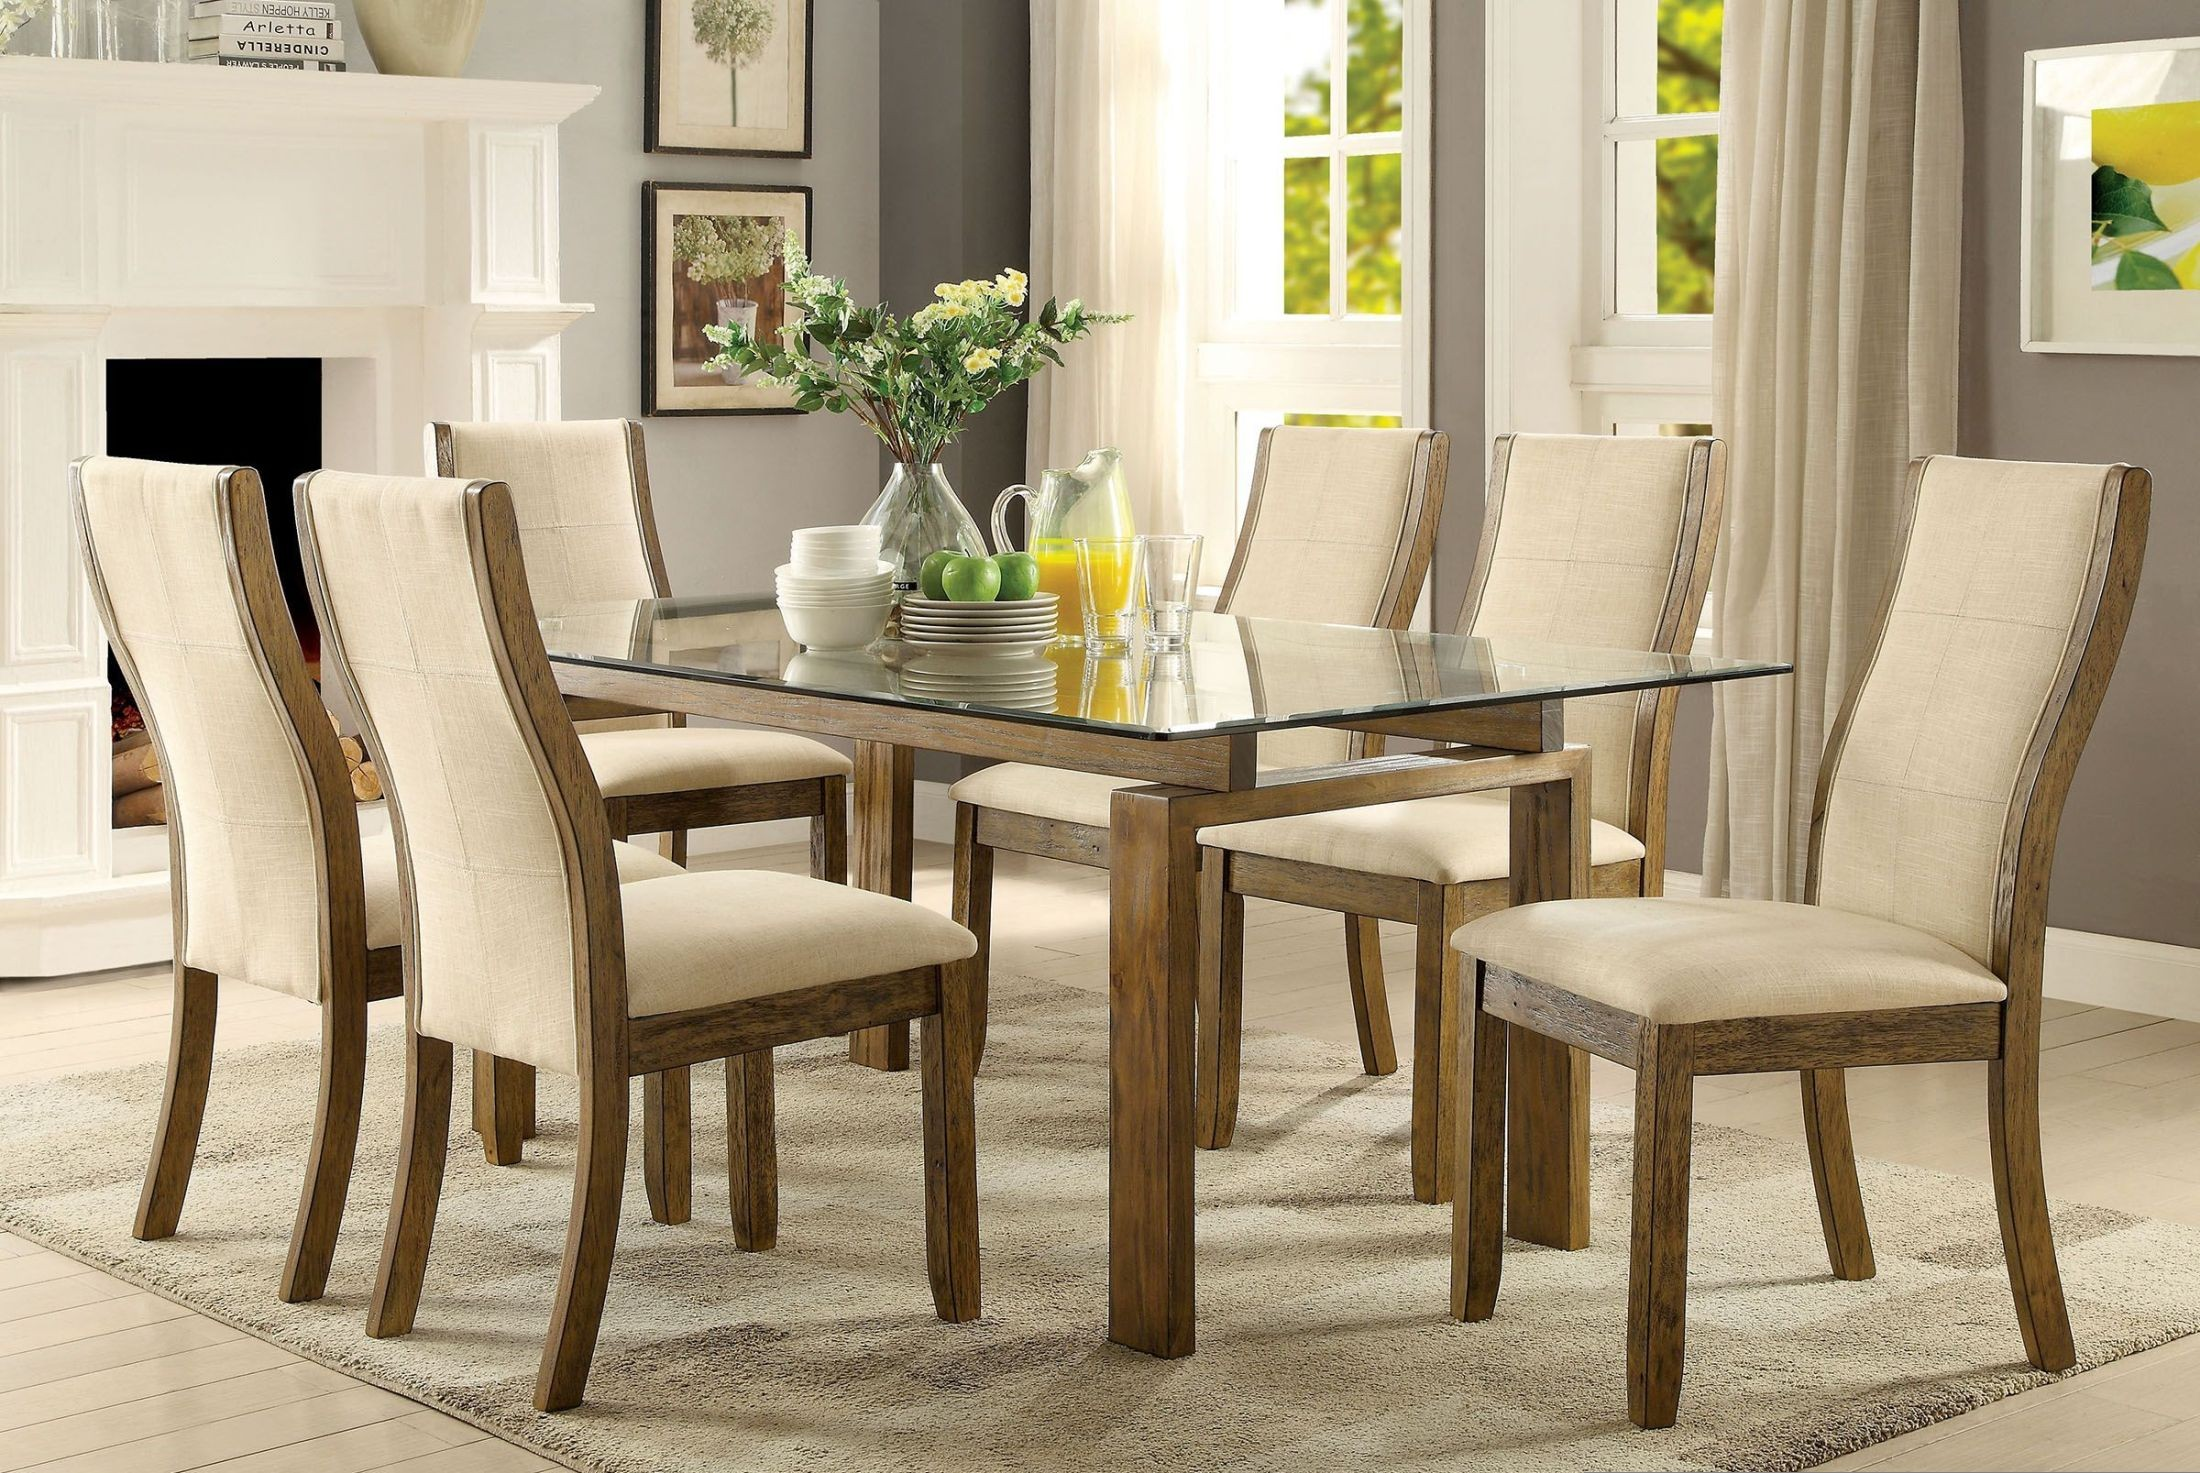 Dining Room Furniture Glass Onway Oak Rectangular Glass Top Dining Room Set From